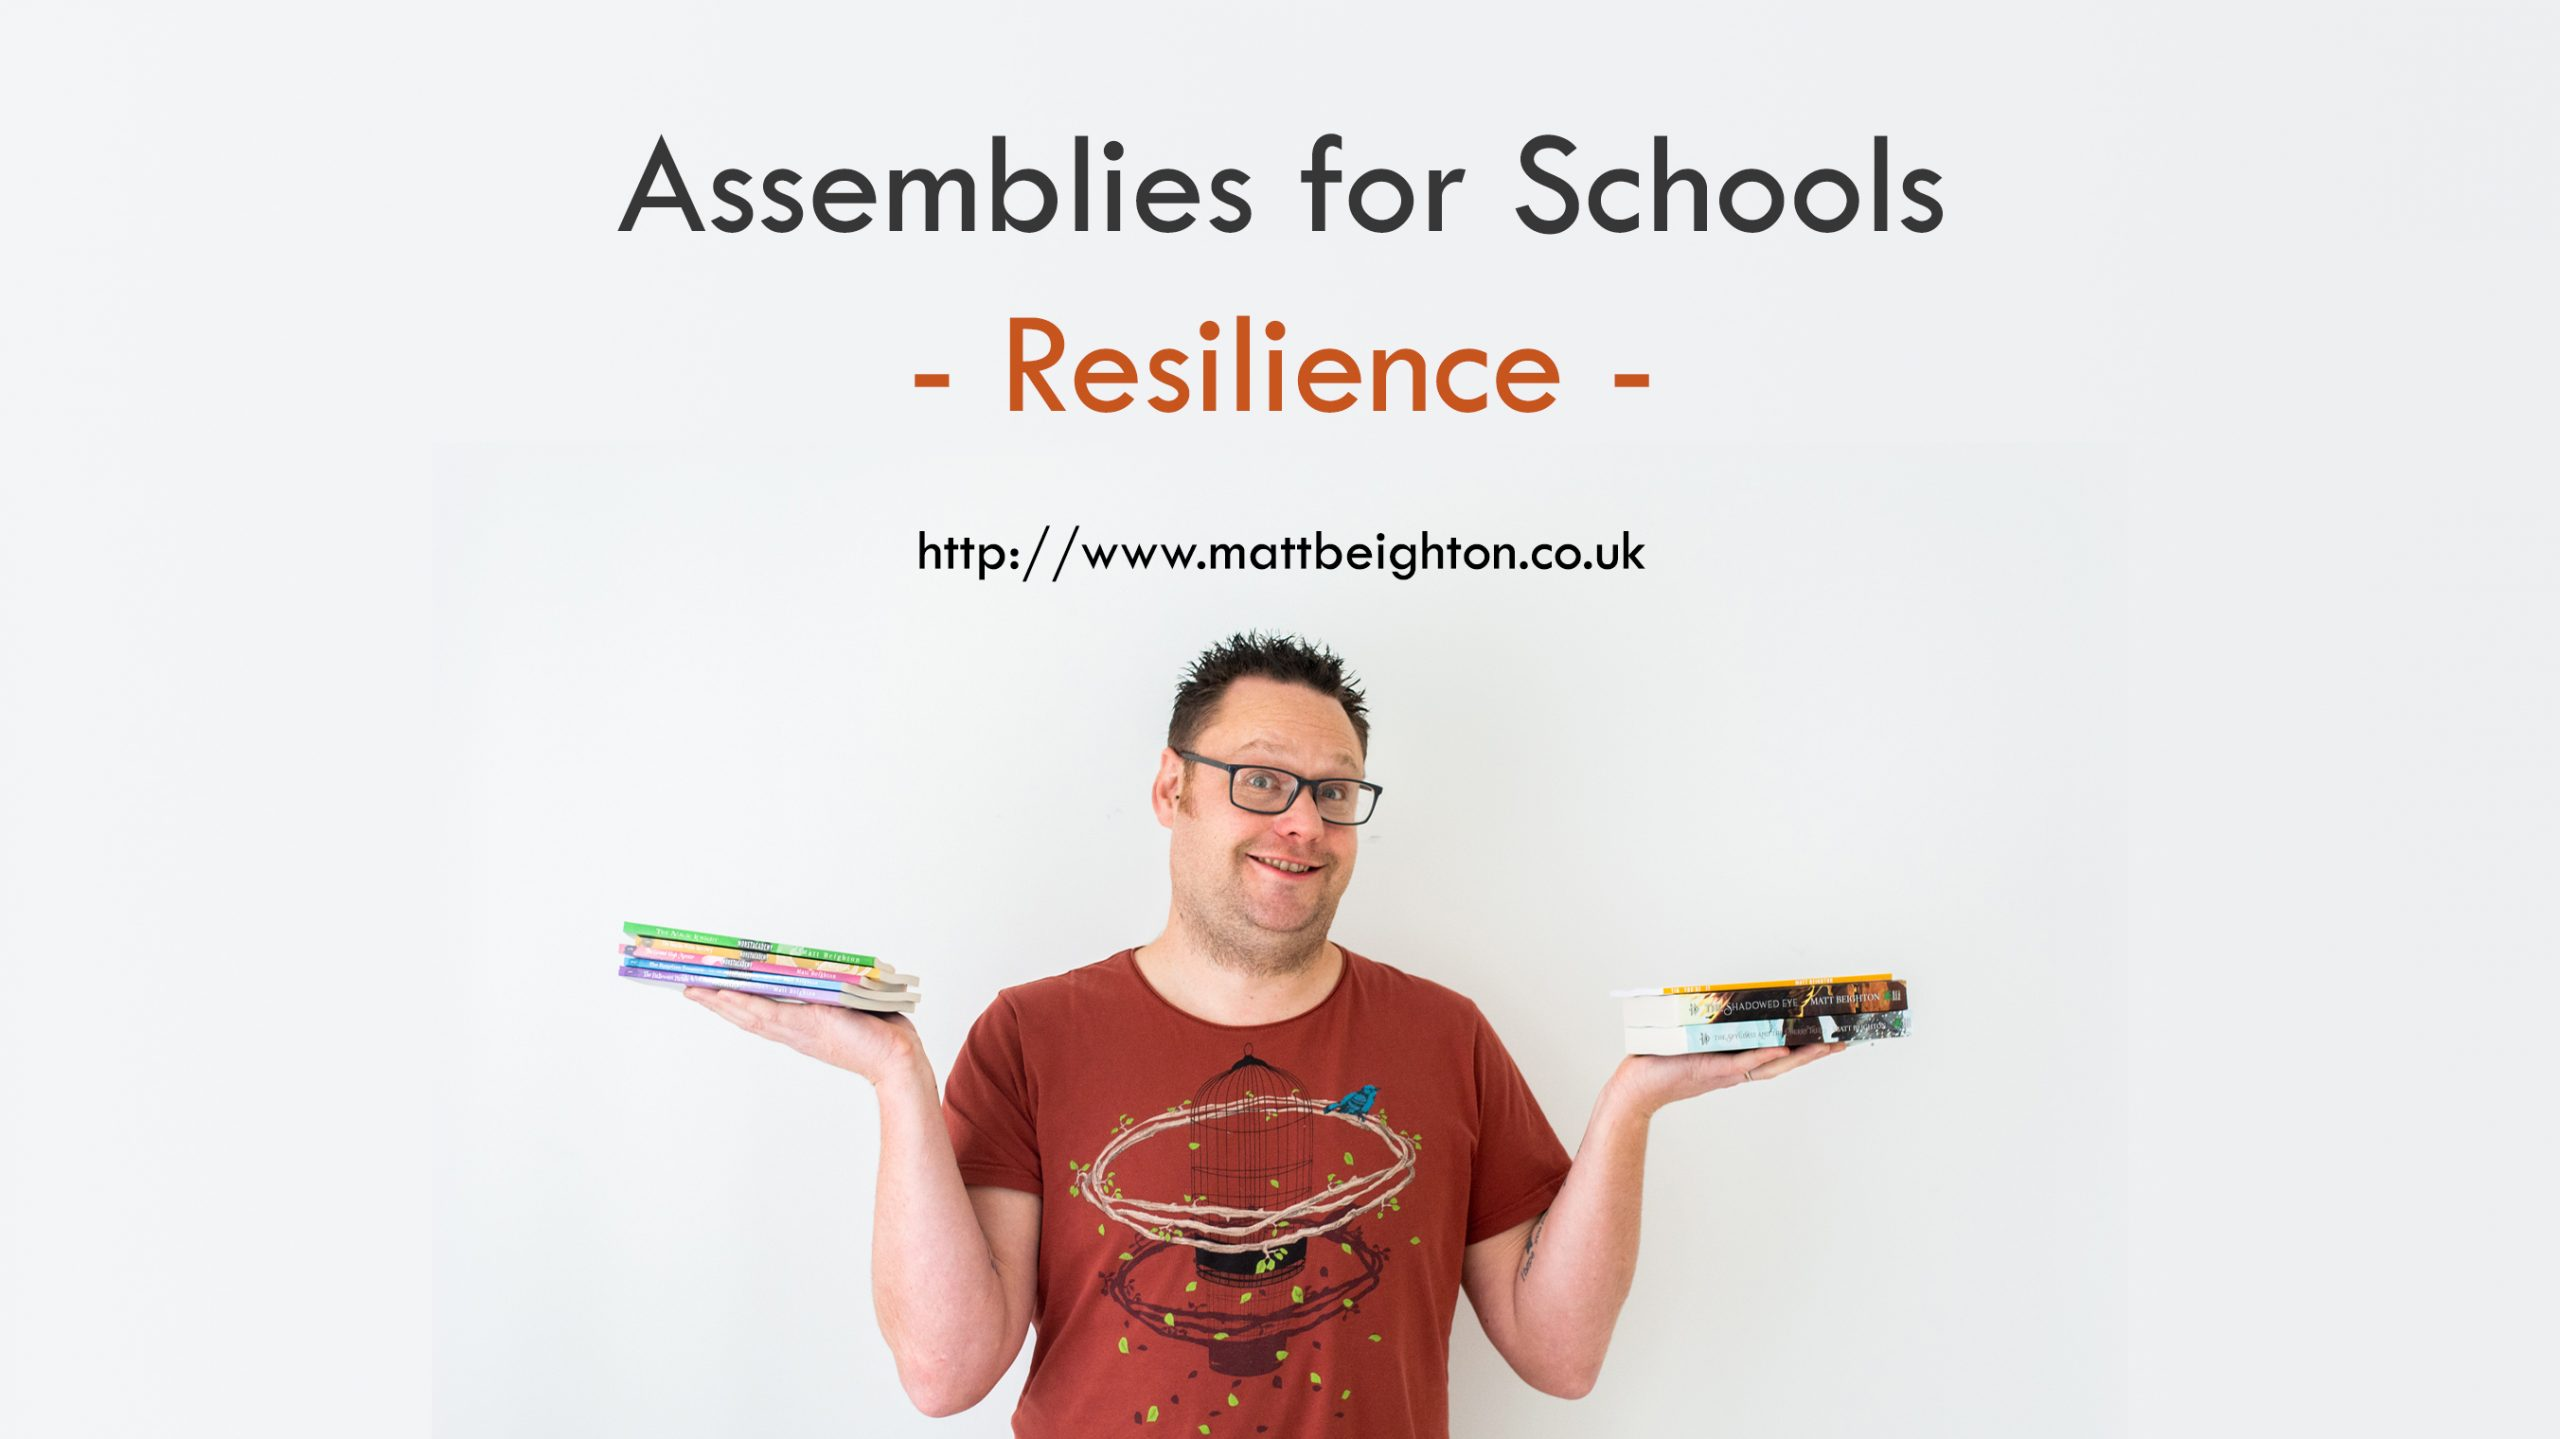 Assemblies for Schools - Resilience